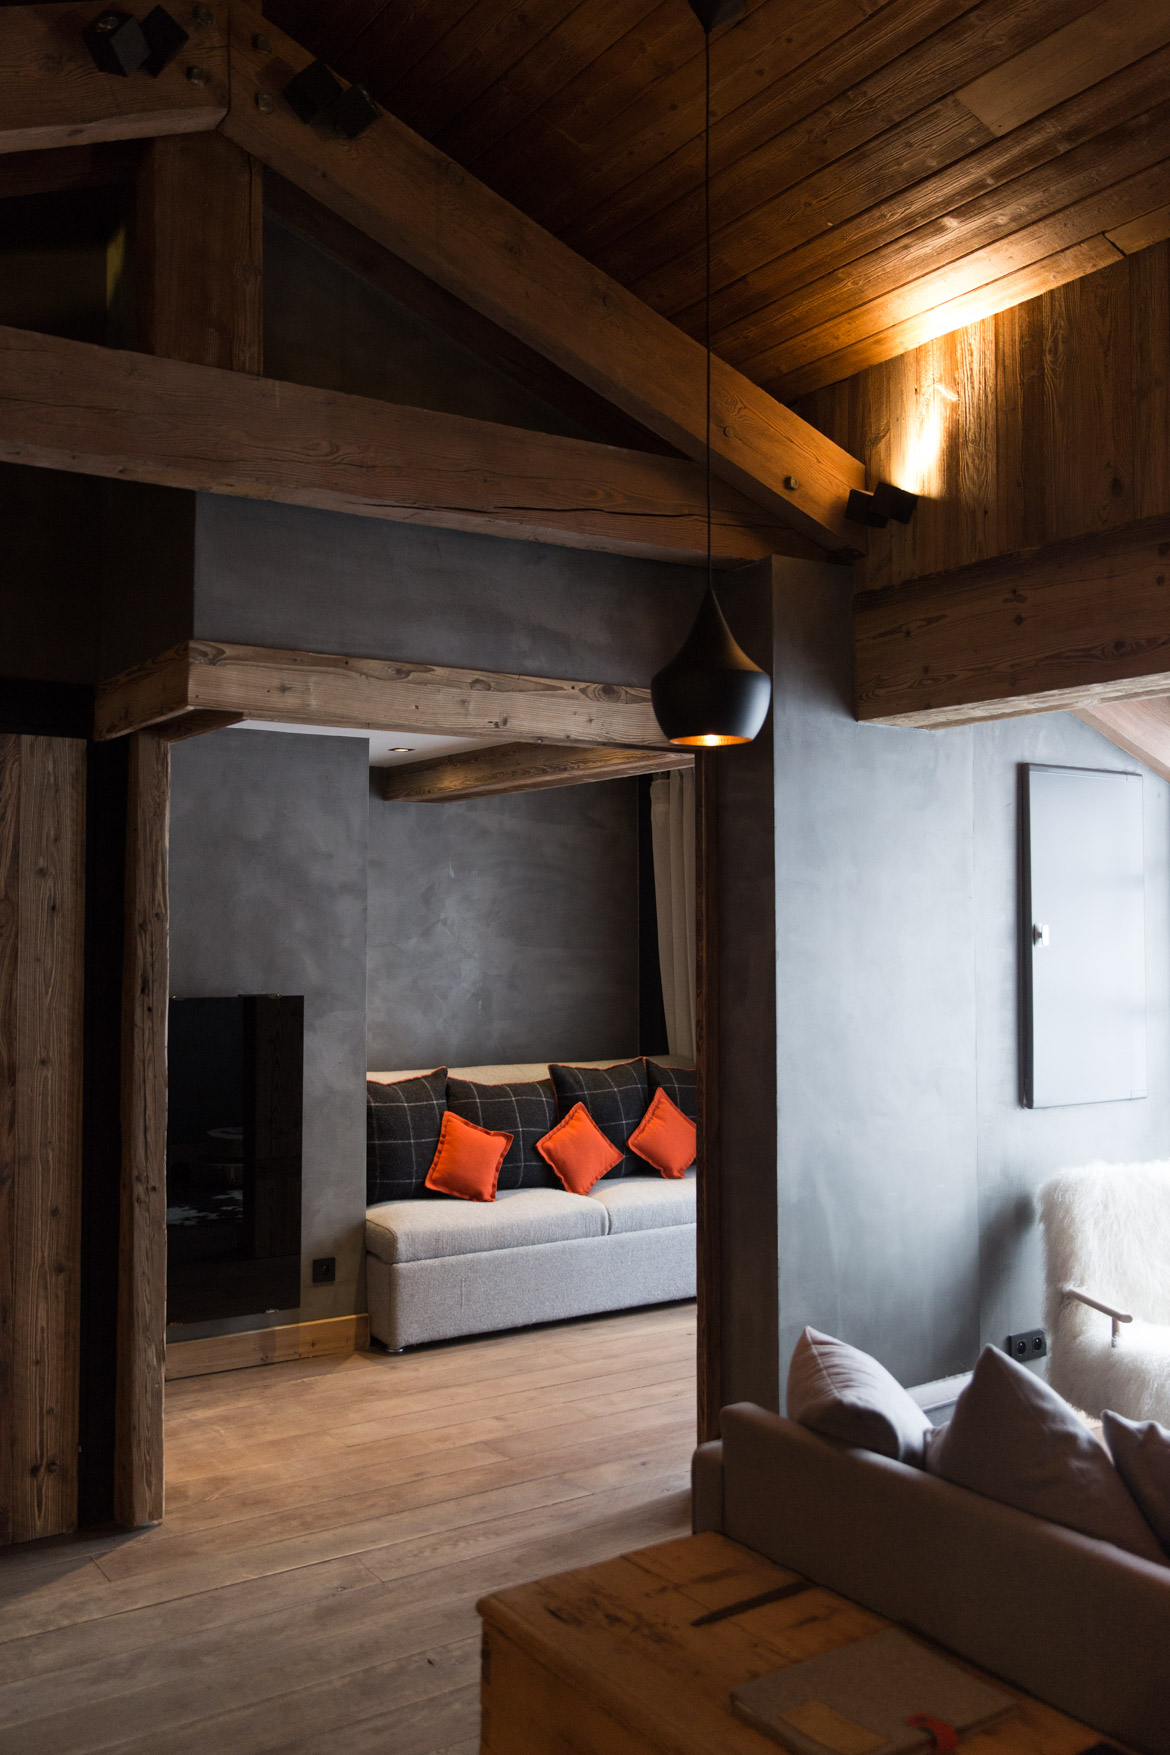 Alpine charm meets modern design at M de Megève